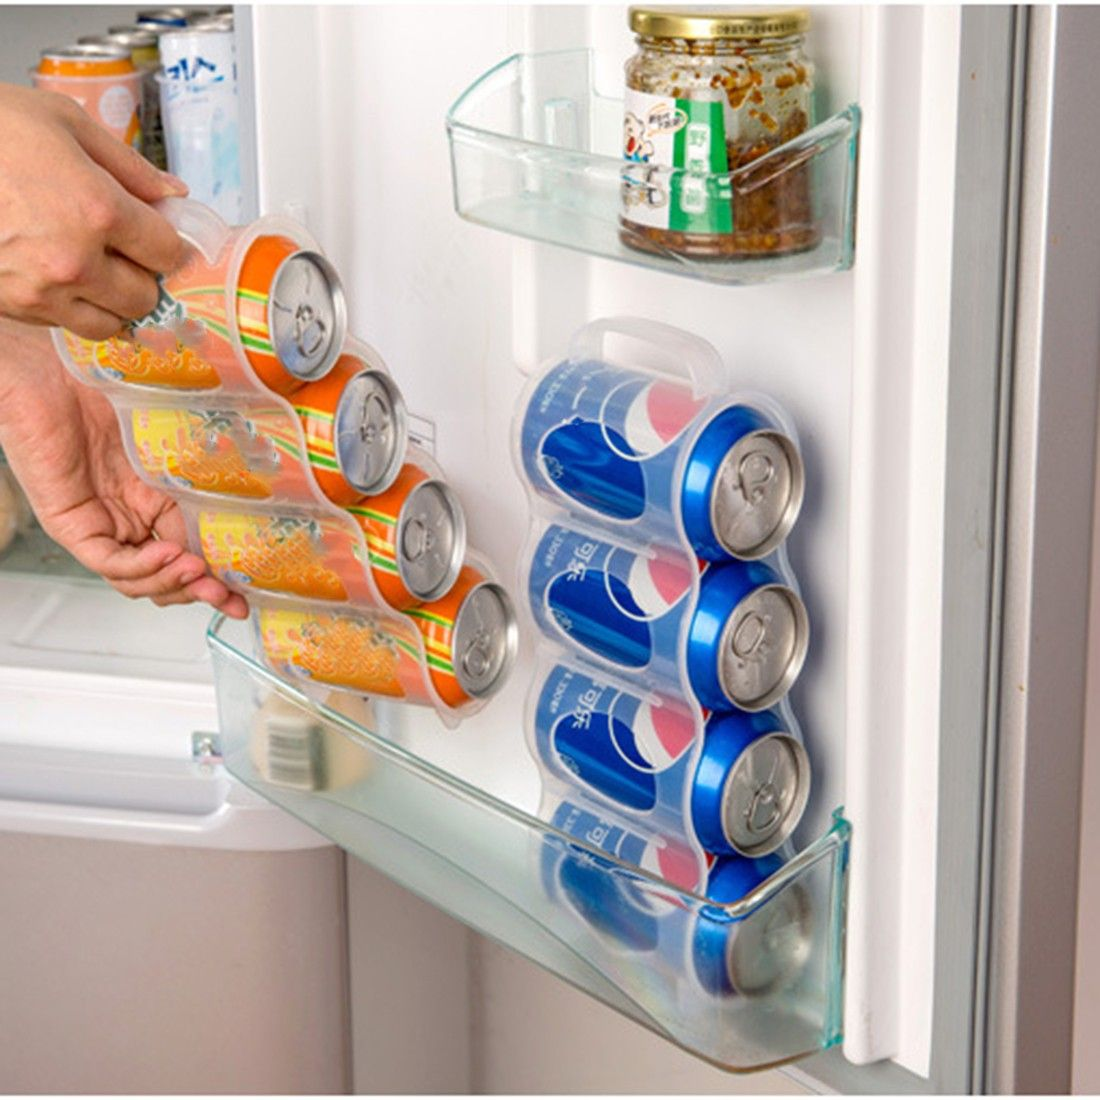 New Kitchen Accessories Coke Drink Can Space Saving Cans Finishing Frame 4 Storage Box Refr Kitchen Organization Refrigerator Storage Refrigerator Organization